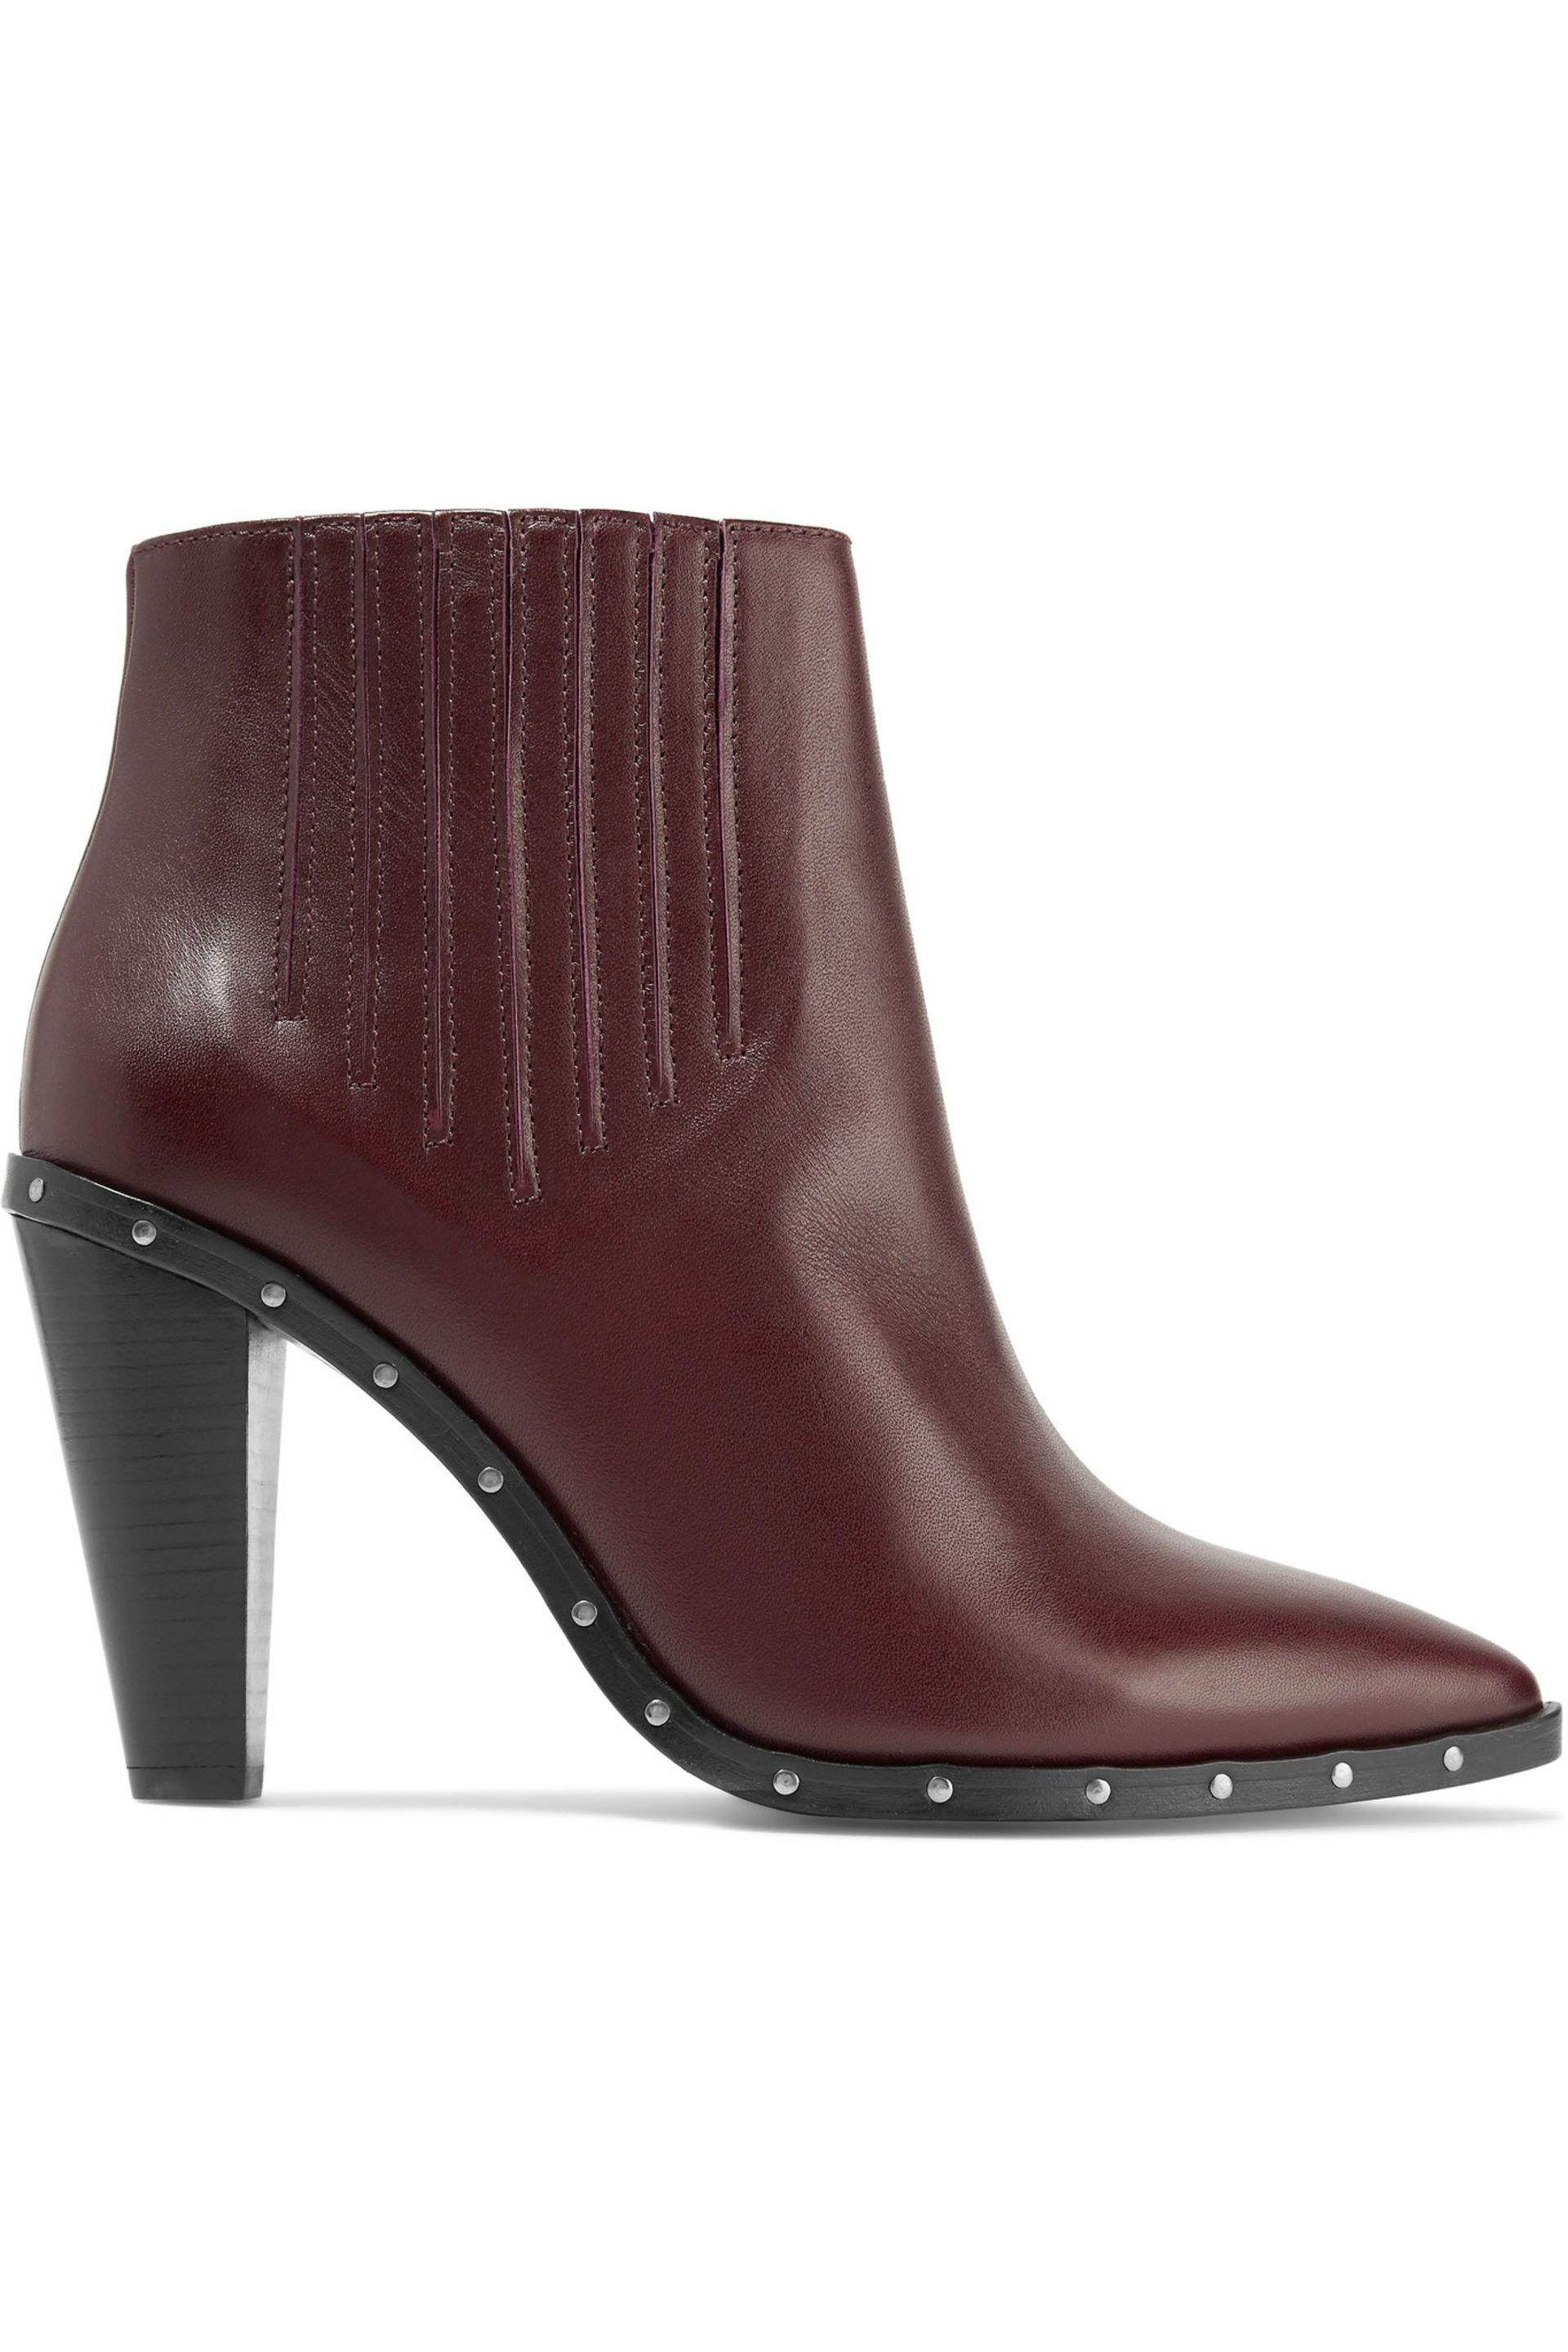 free shipping big sale Iro Studded Leather Ankle Boots outlet latest collections with credit card sale online buy cheap limited edition iCRXo